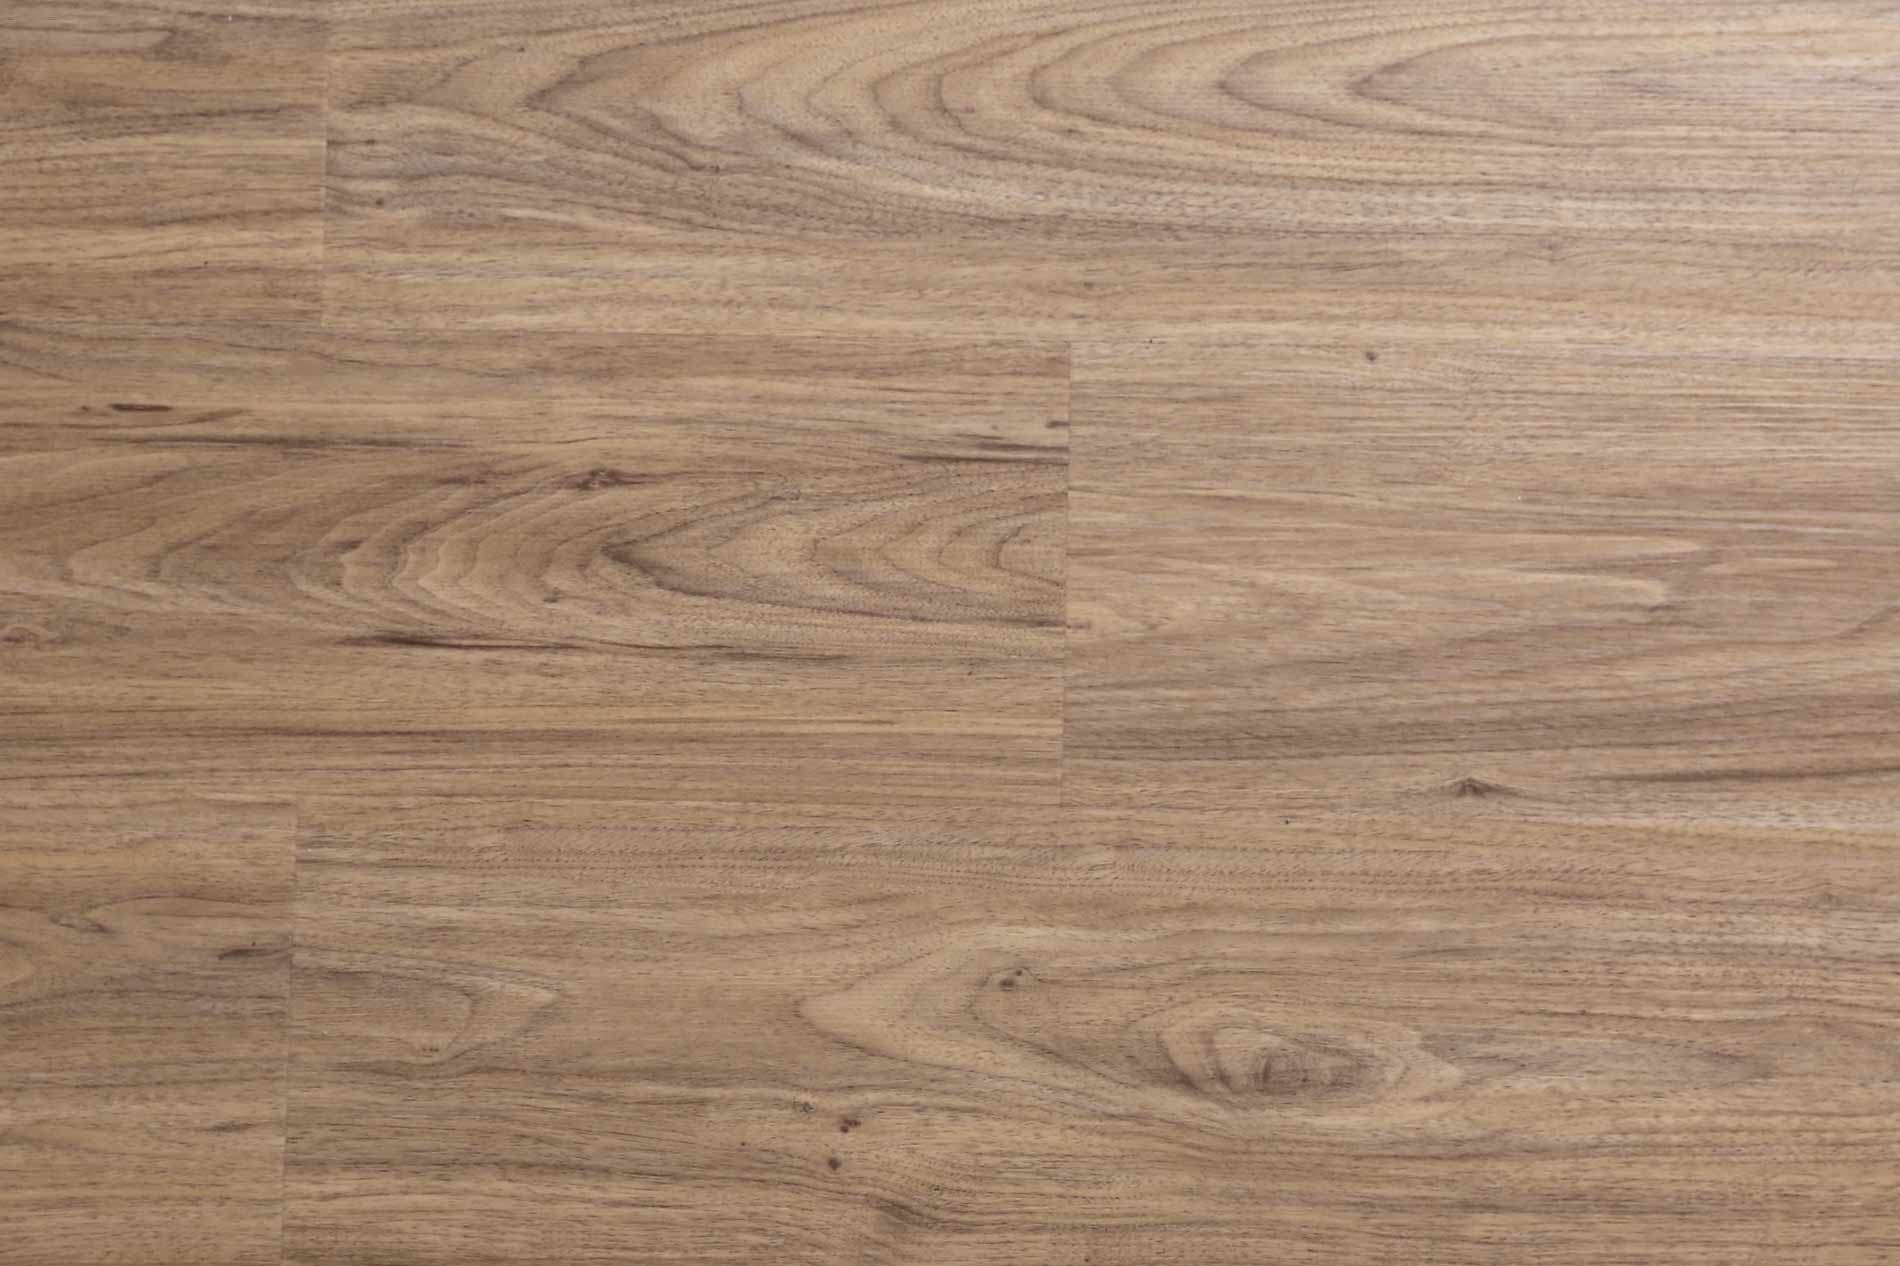 Luxury vinyl flooring trident luxury vinyl planks for Luxury vinyl flooring